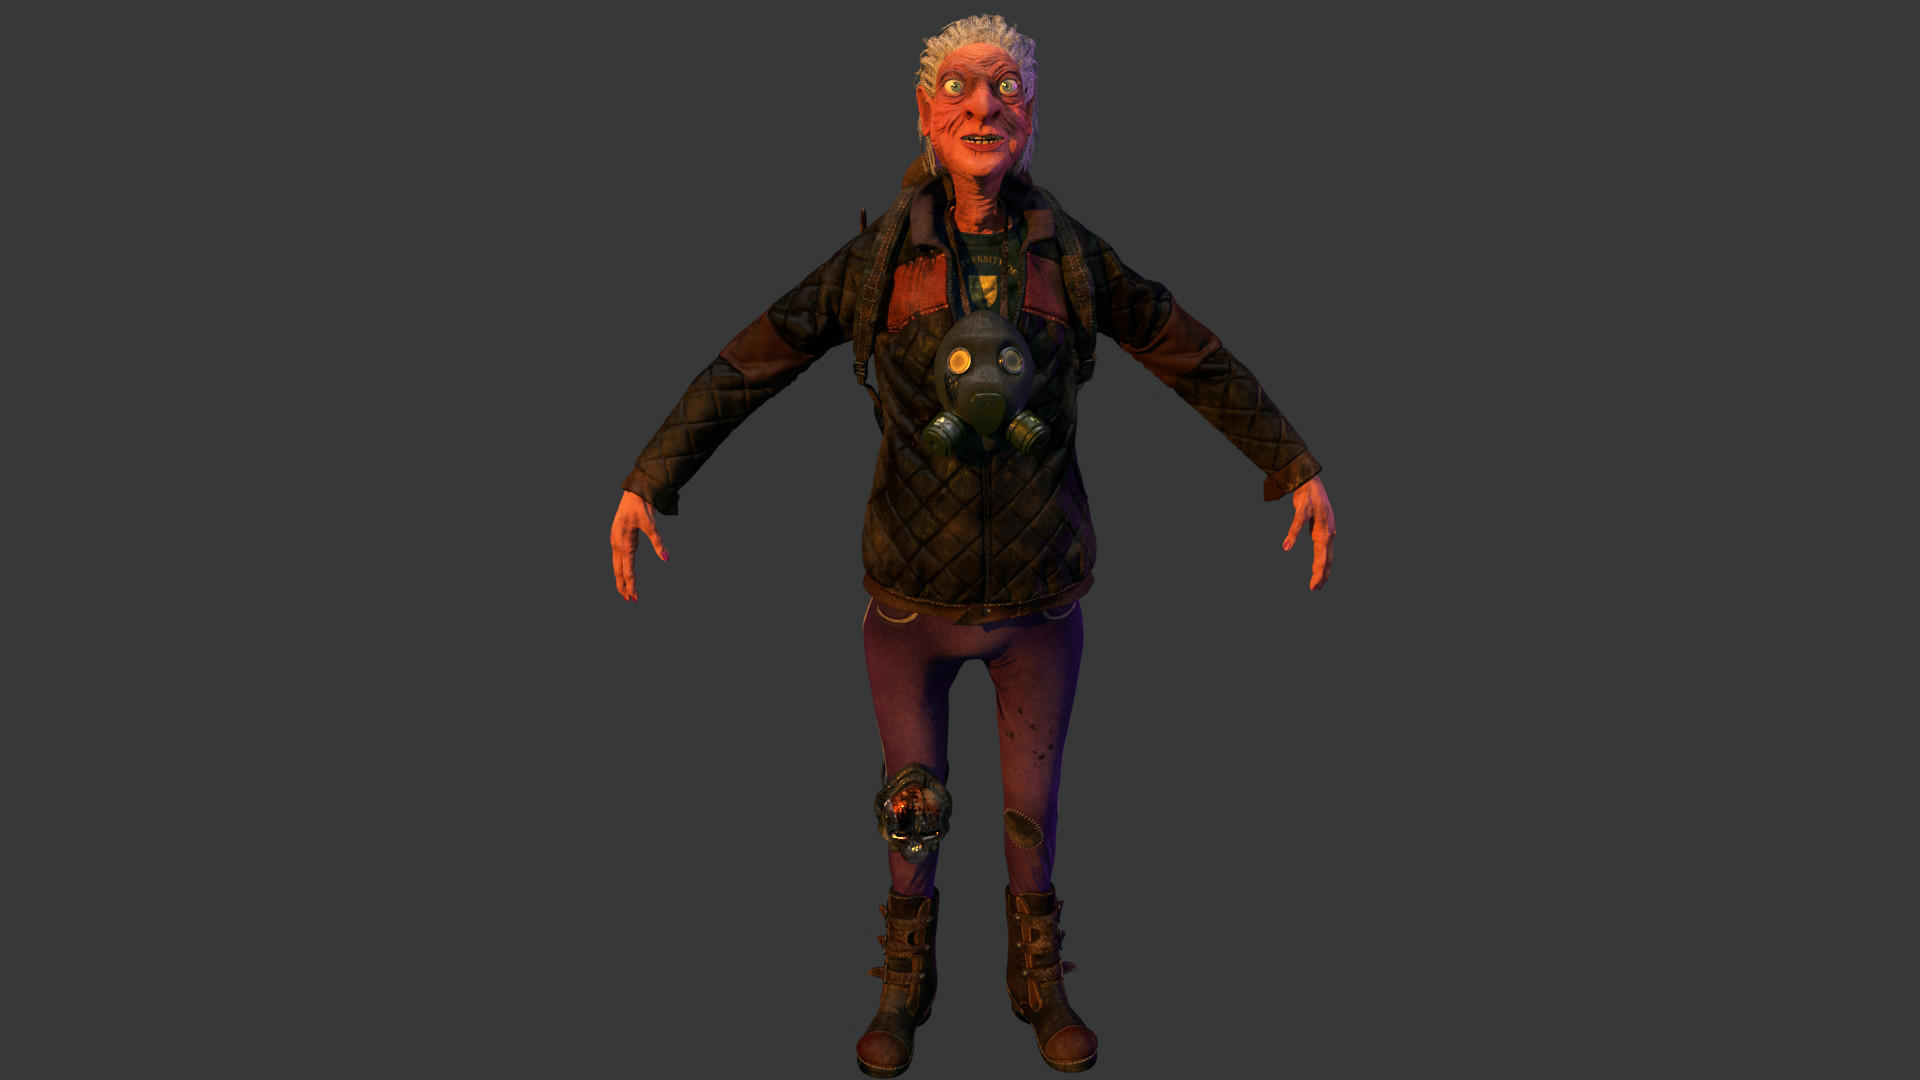 Testing how granny will look like in Maya